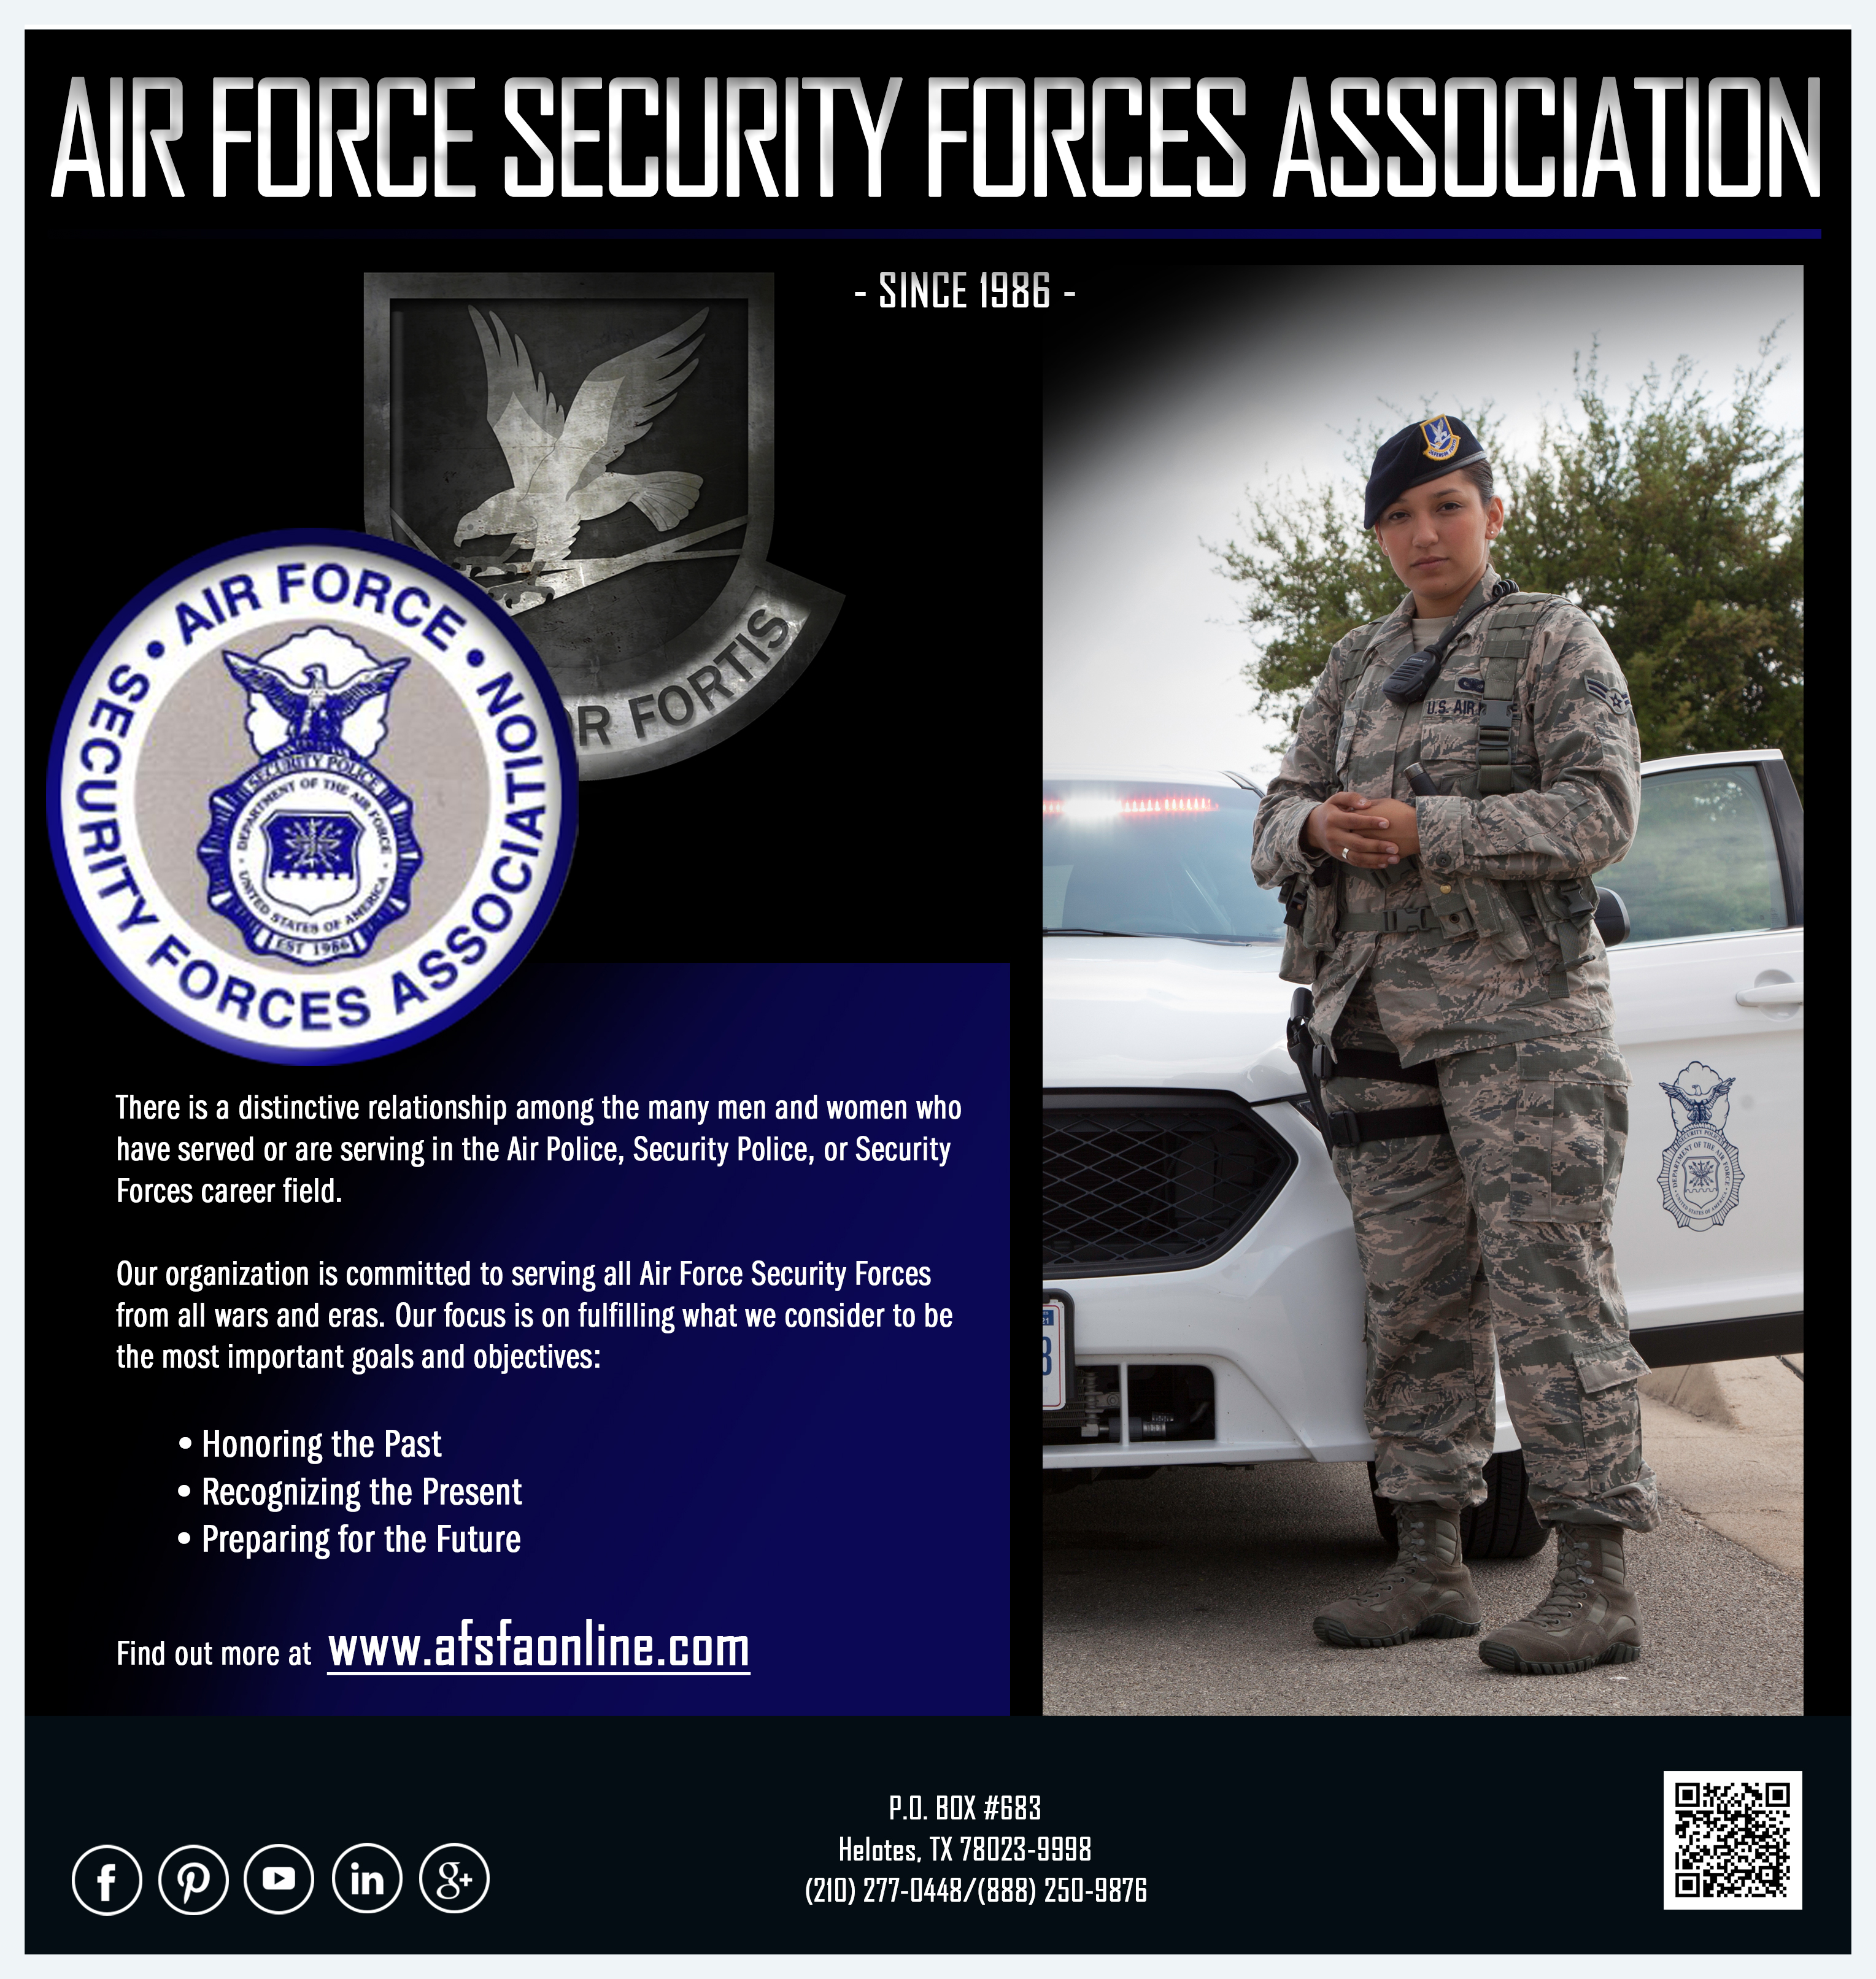 AFSFA | Air Force Security Forces Association - Posters